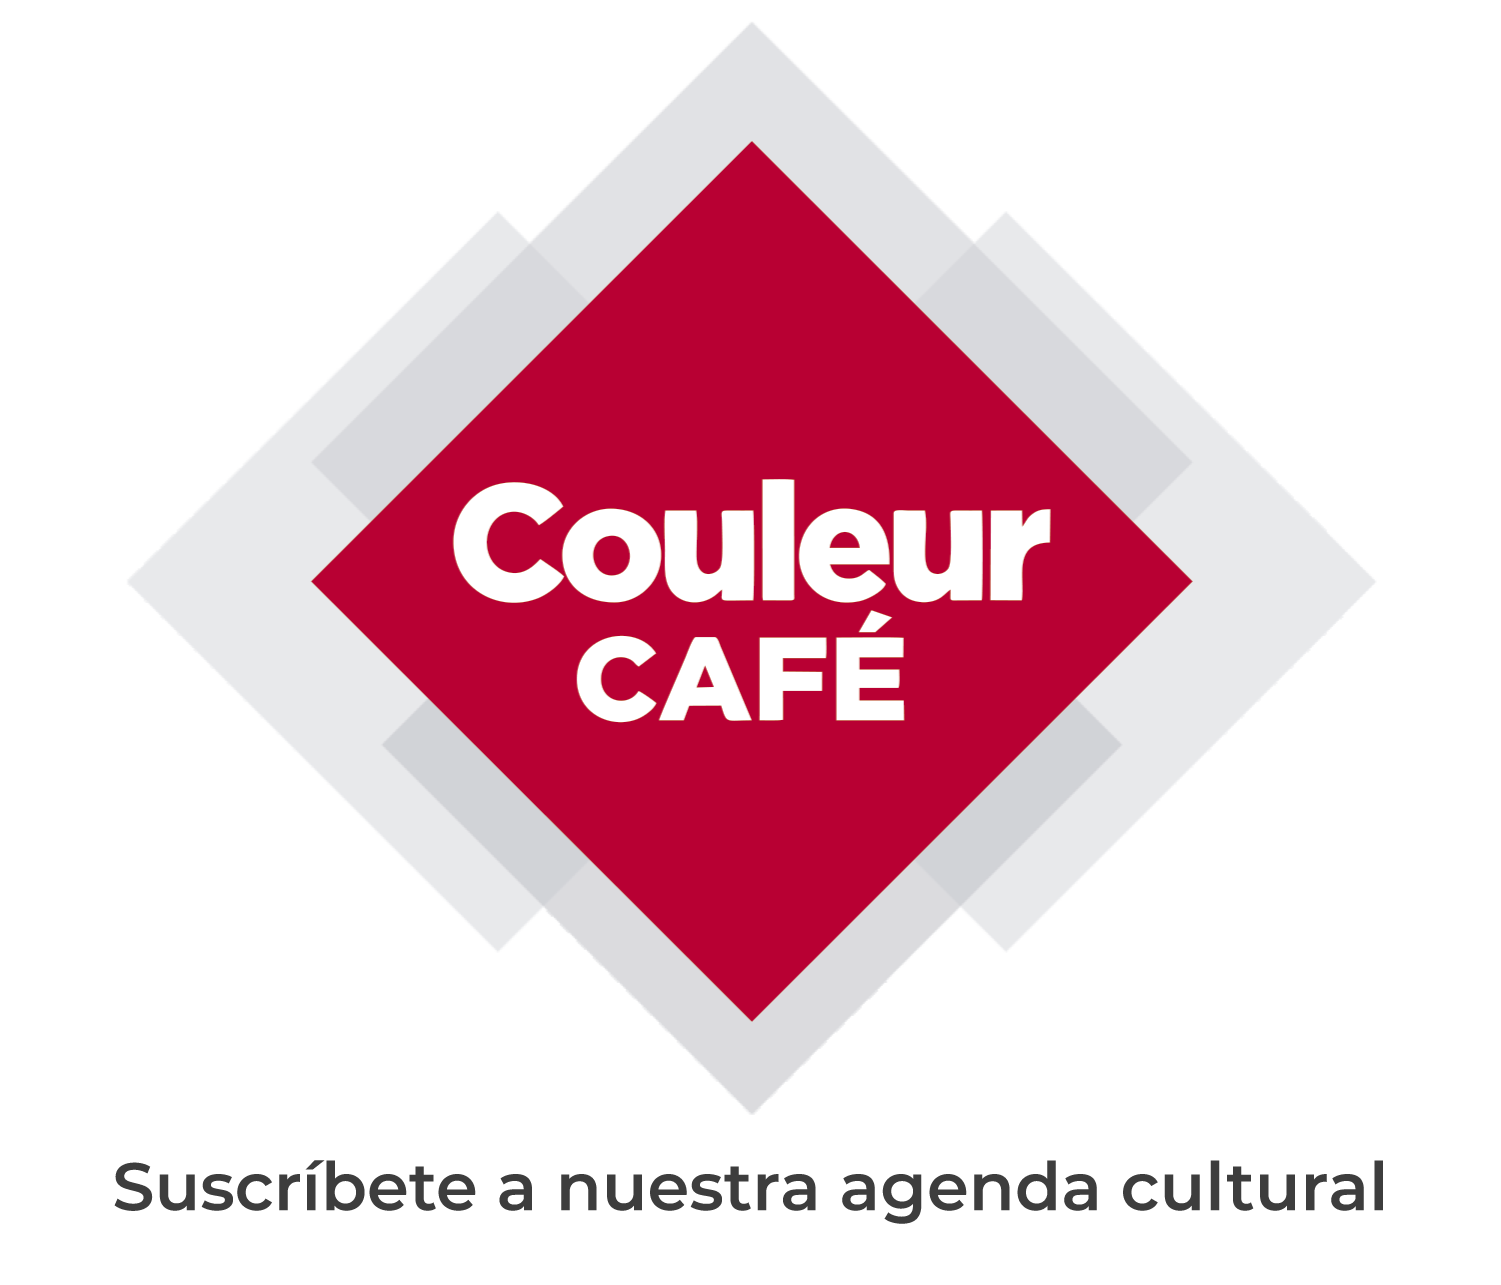 Coulour cafe